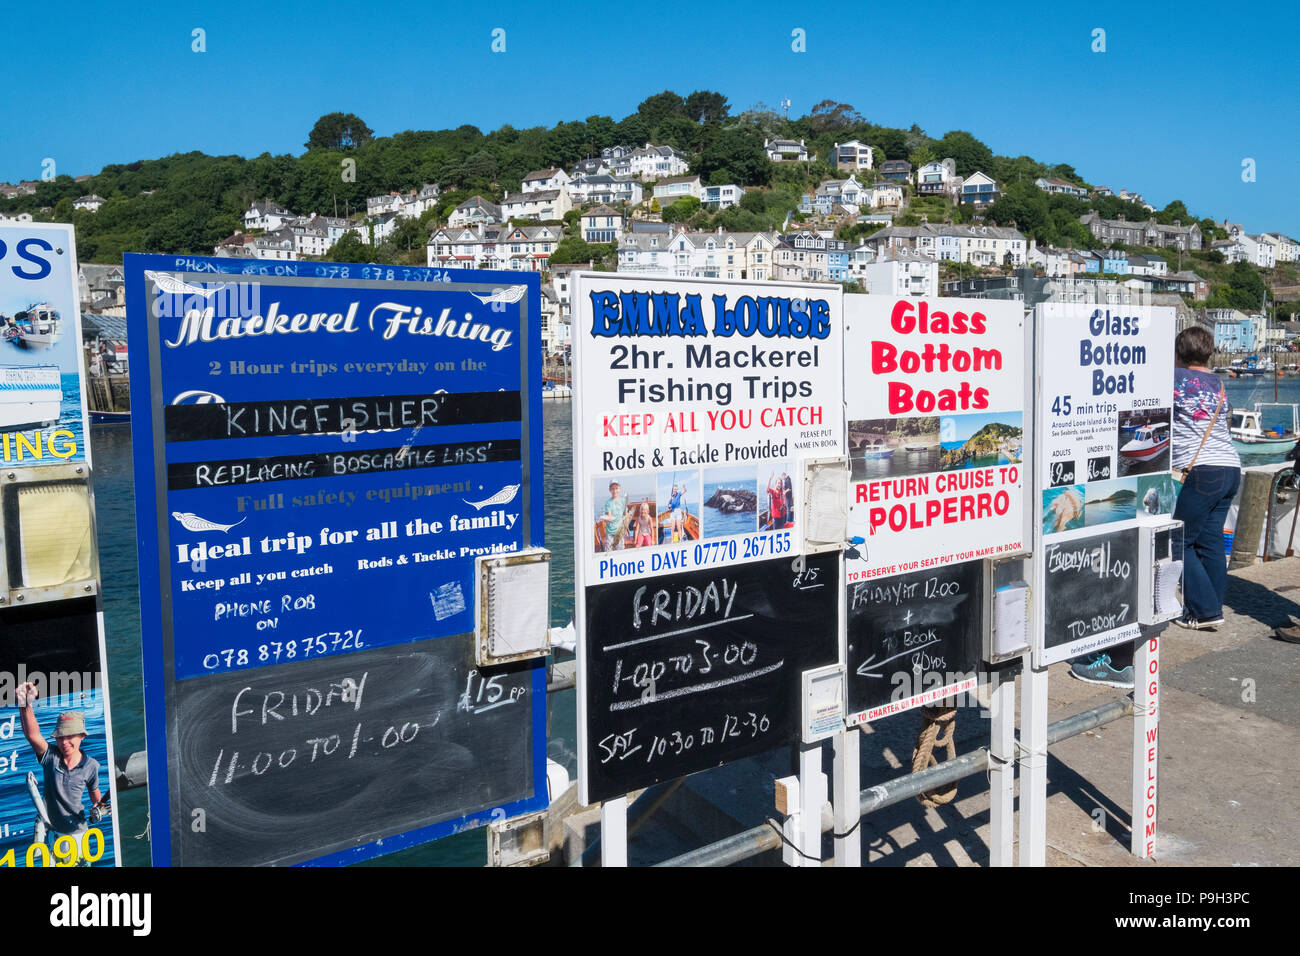 Signs advertising mackerel fishing and glass bottom boat trips in the fishing port of Looe, Cornwall, England, UK. - Stock Image